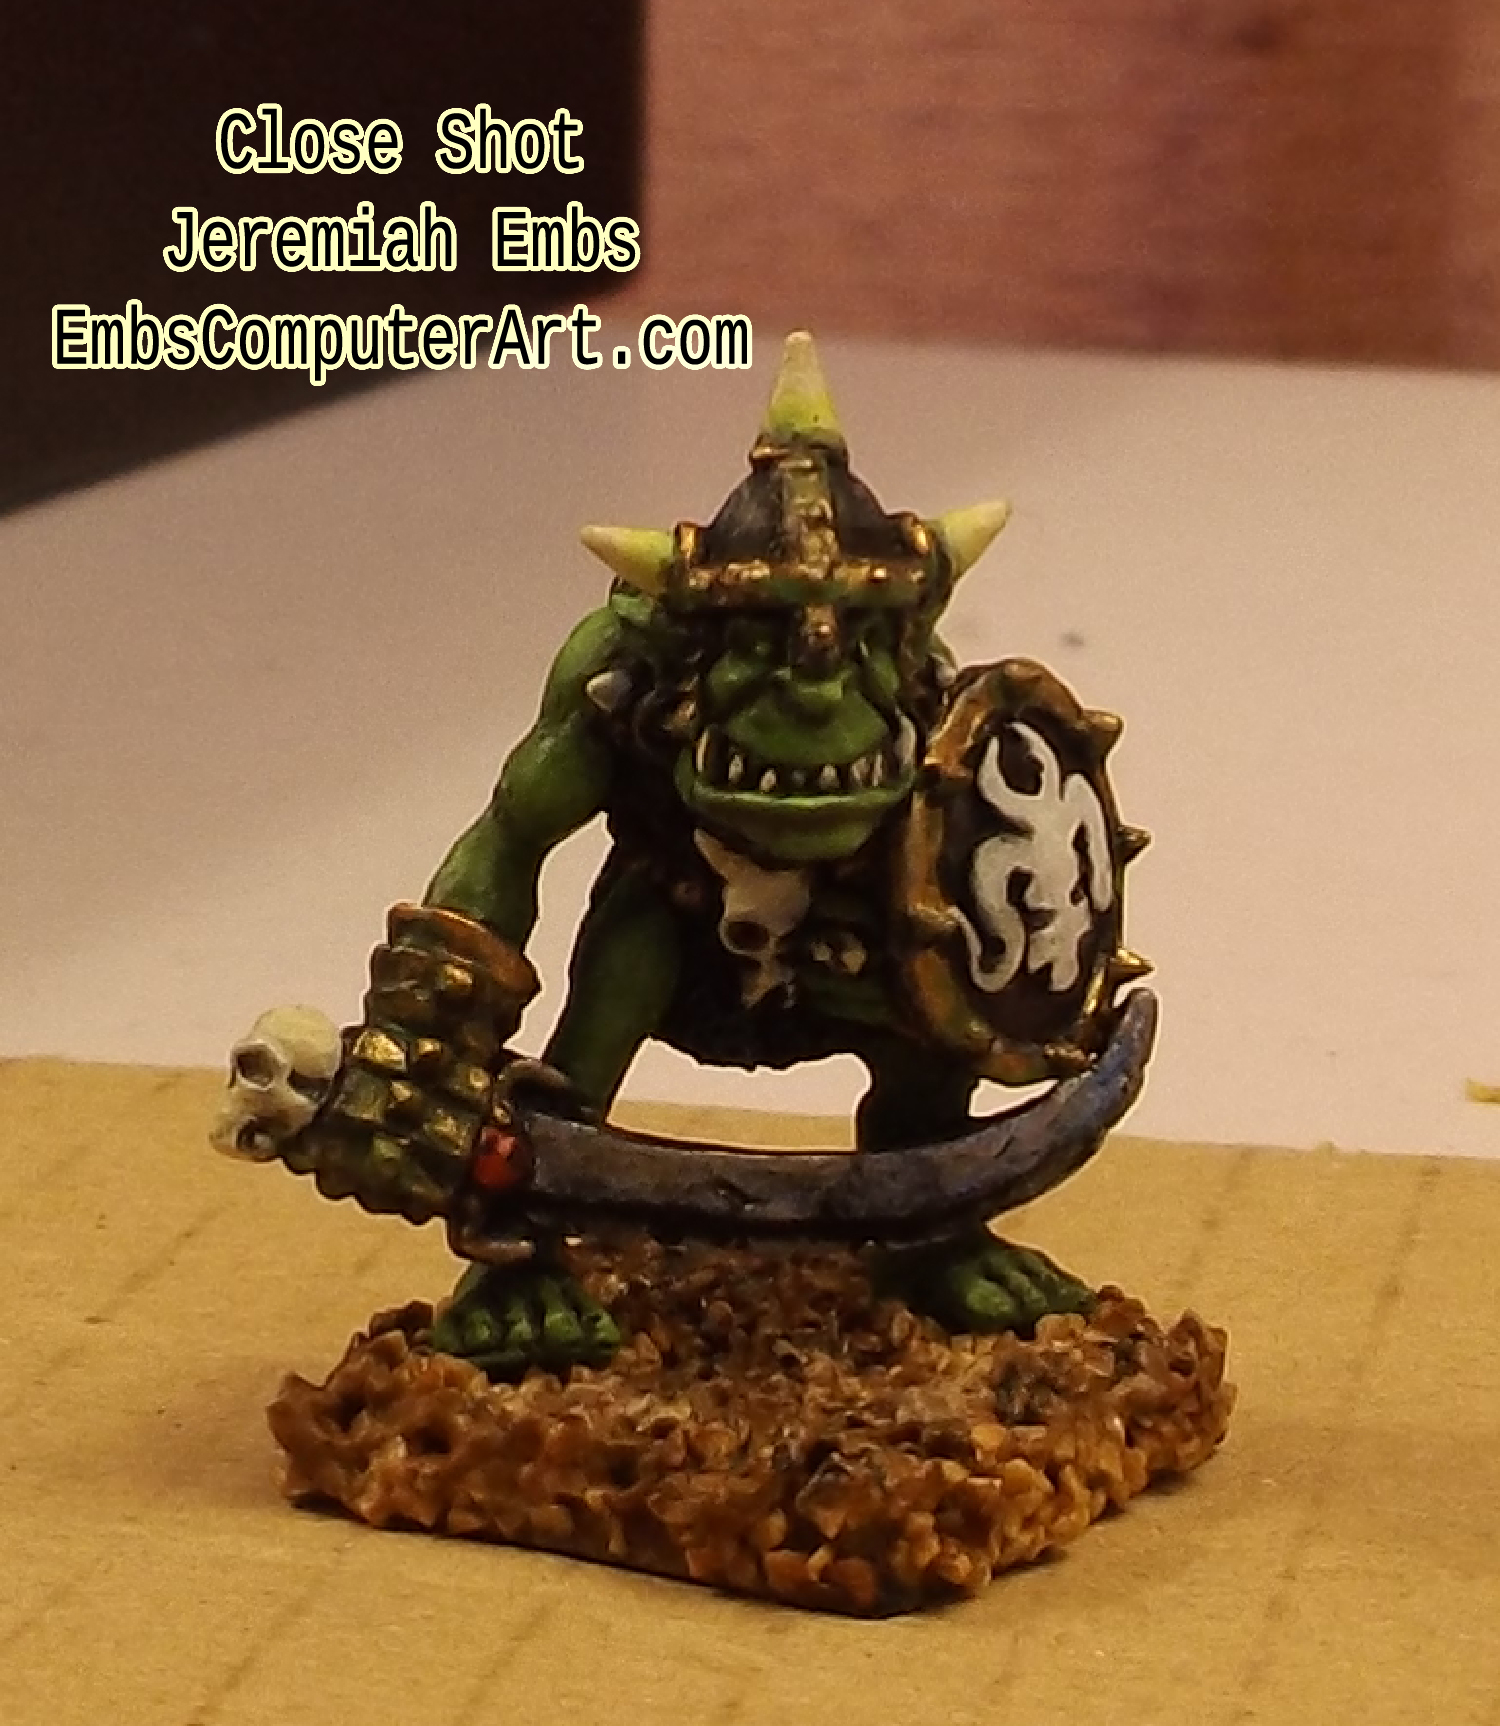 Close Shot - Orc is ready to rumble and tumble!